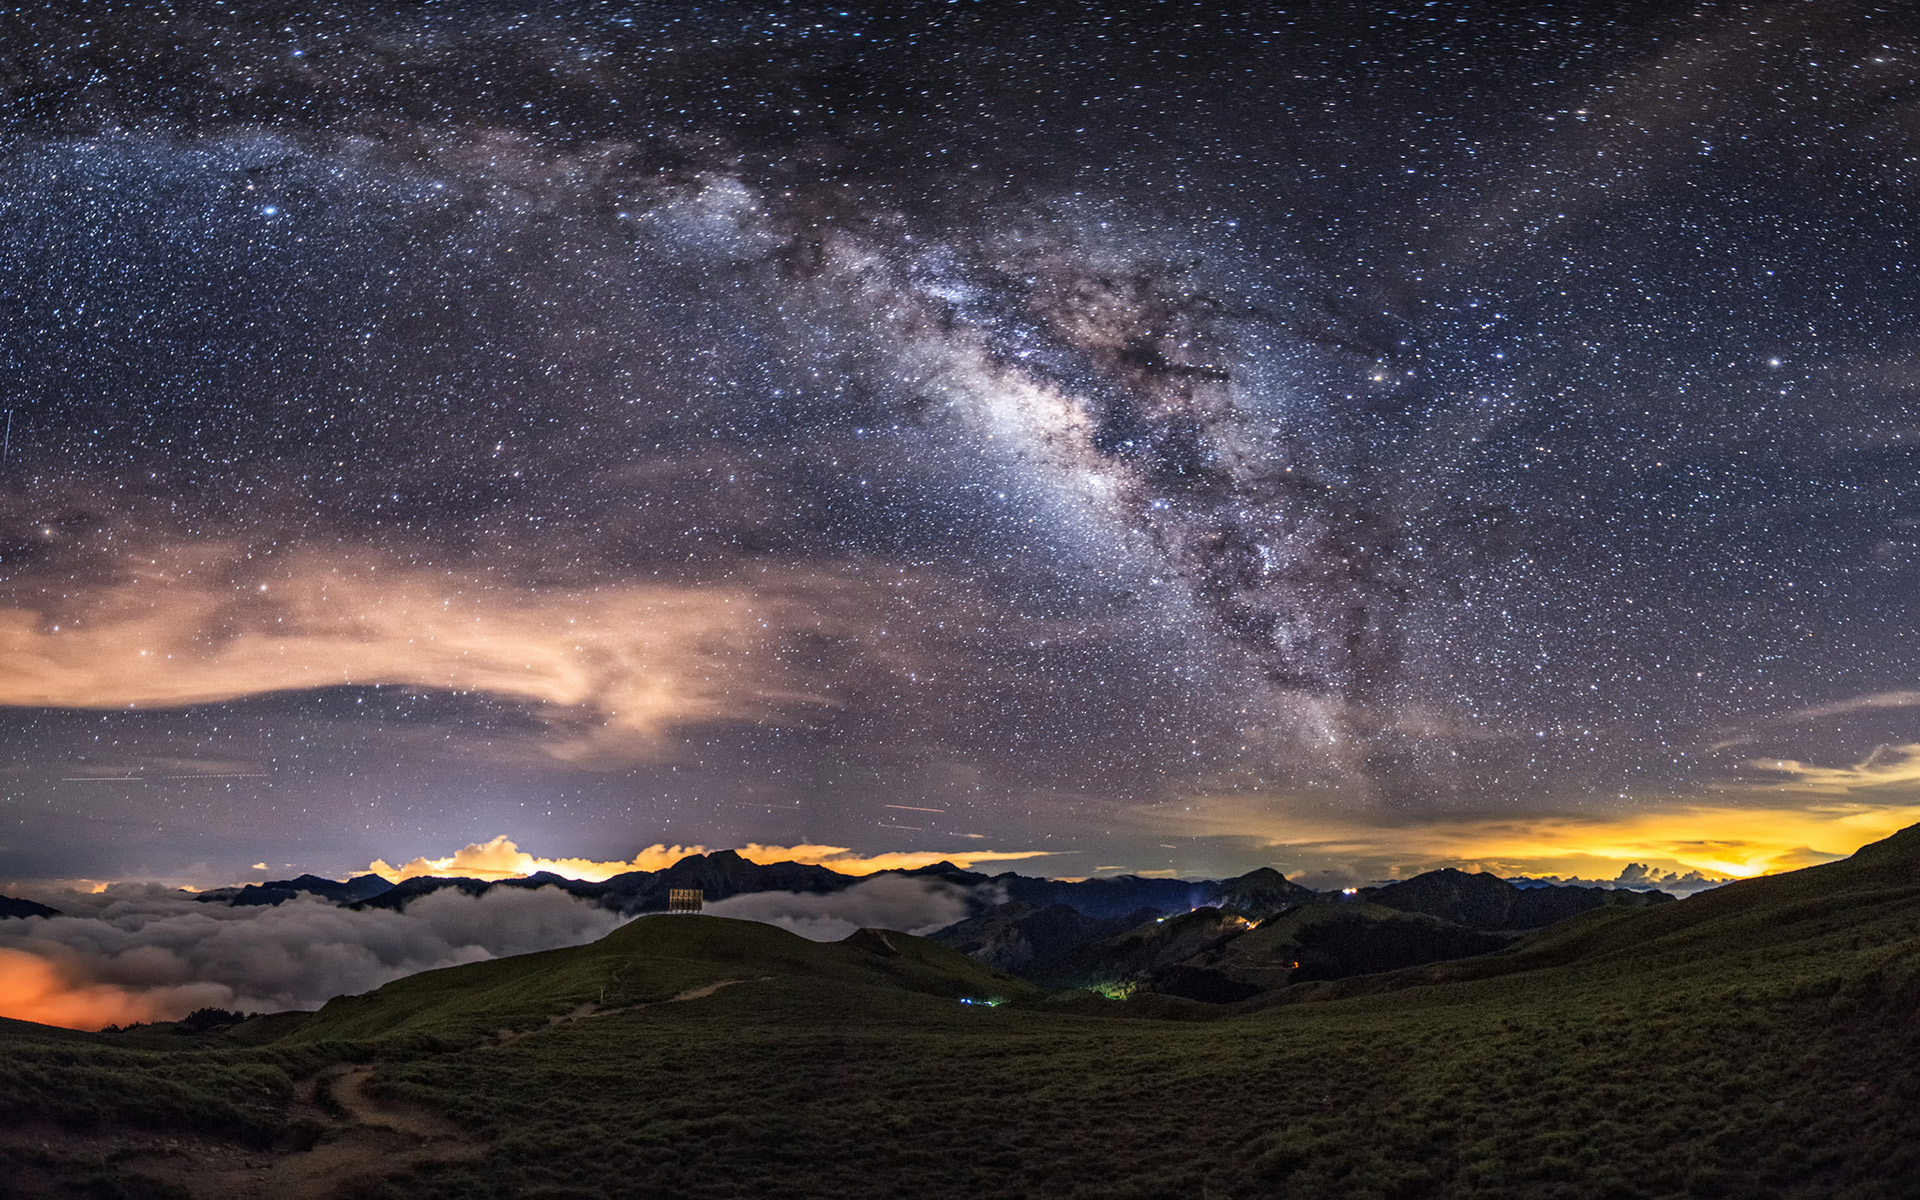 Milky way hd wallpaper background image 1920x1200 id - Cool night nature backgrounds ...